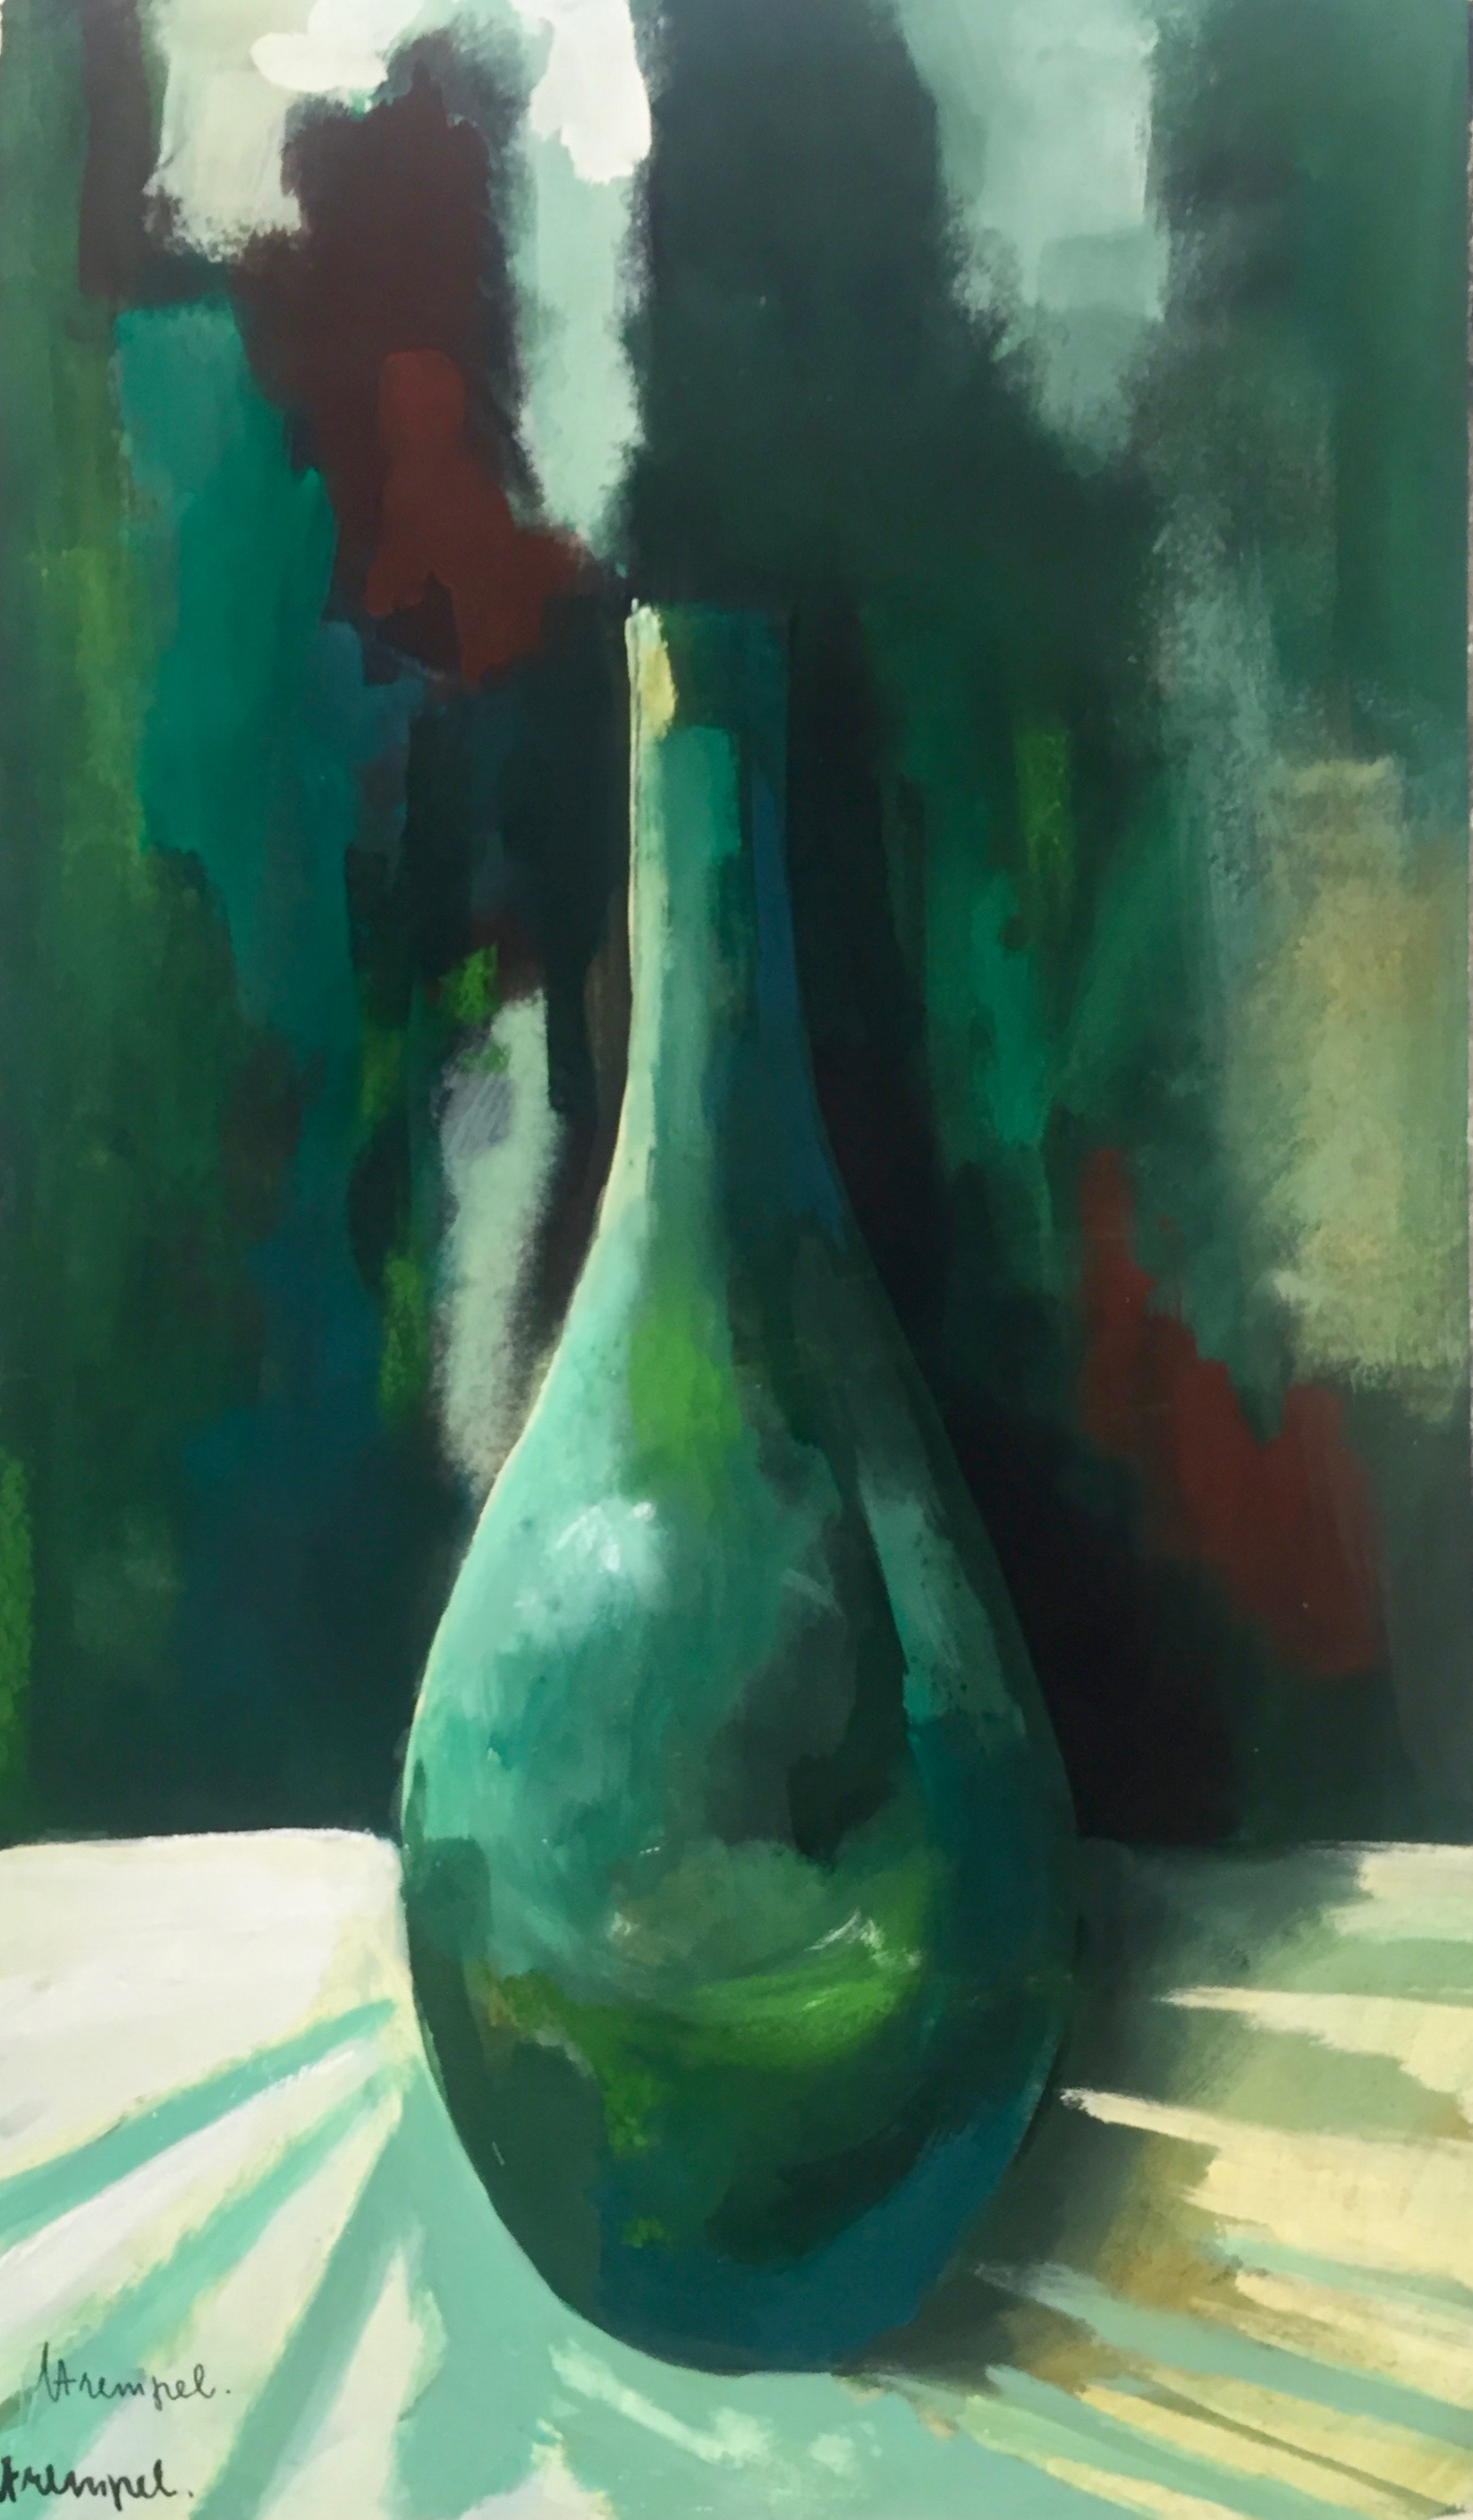 Horst Strempel | Still Life with Green Bottle | 1966 | tempera | signed, dated and titled | 58.6 x 36.5